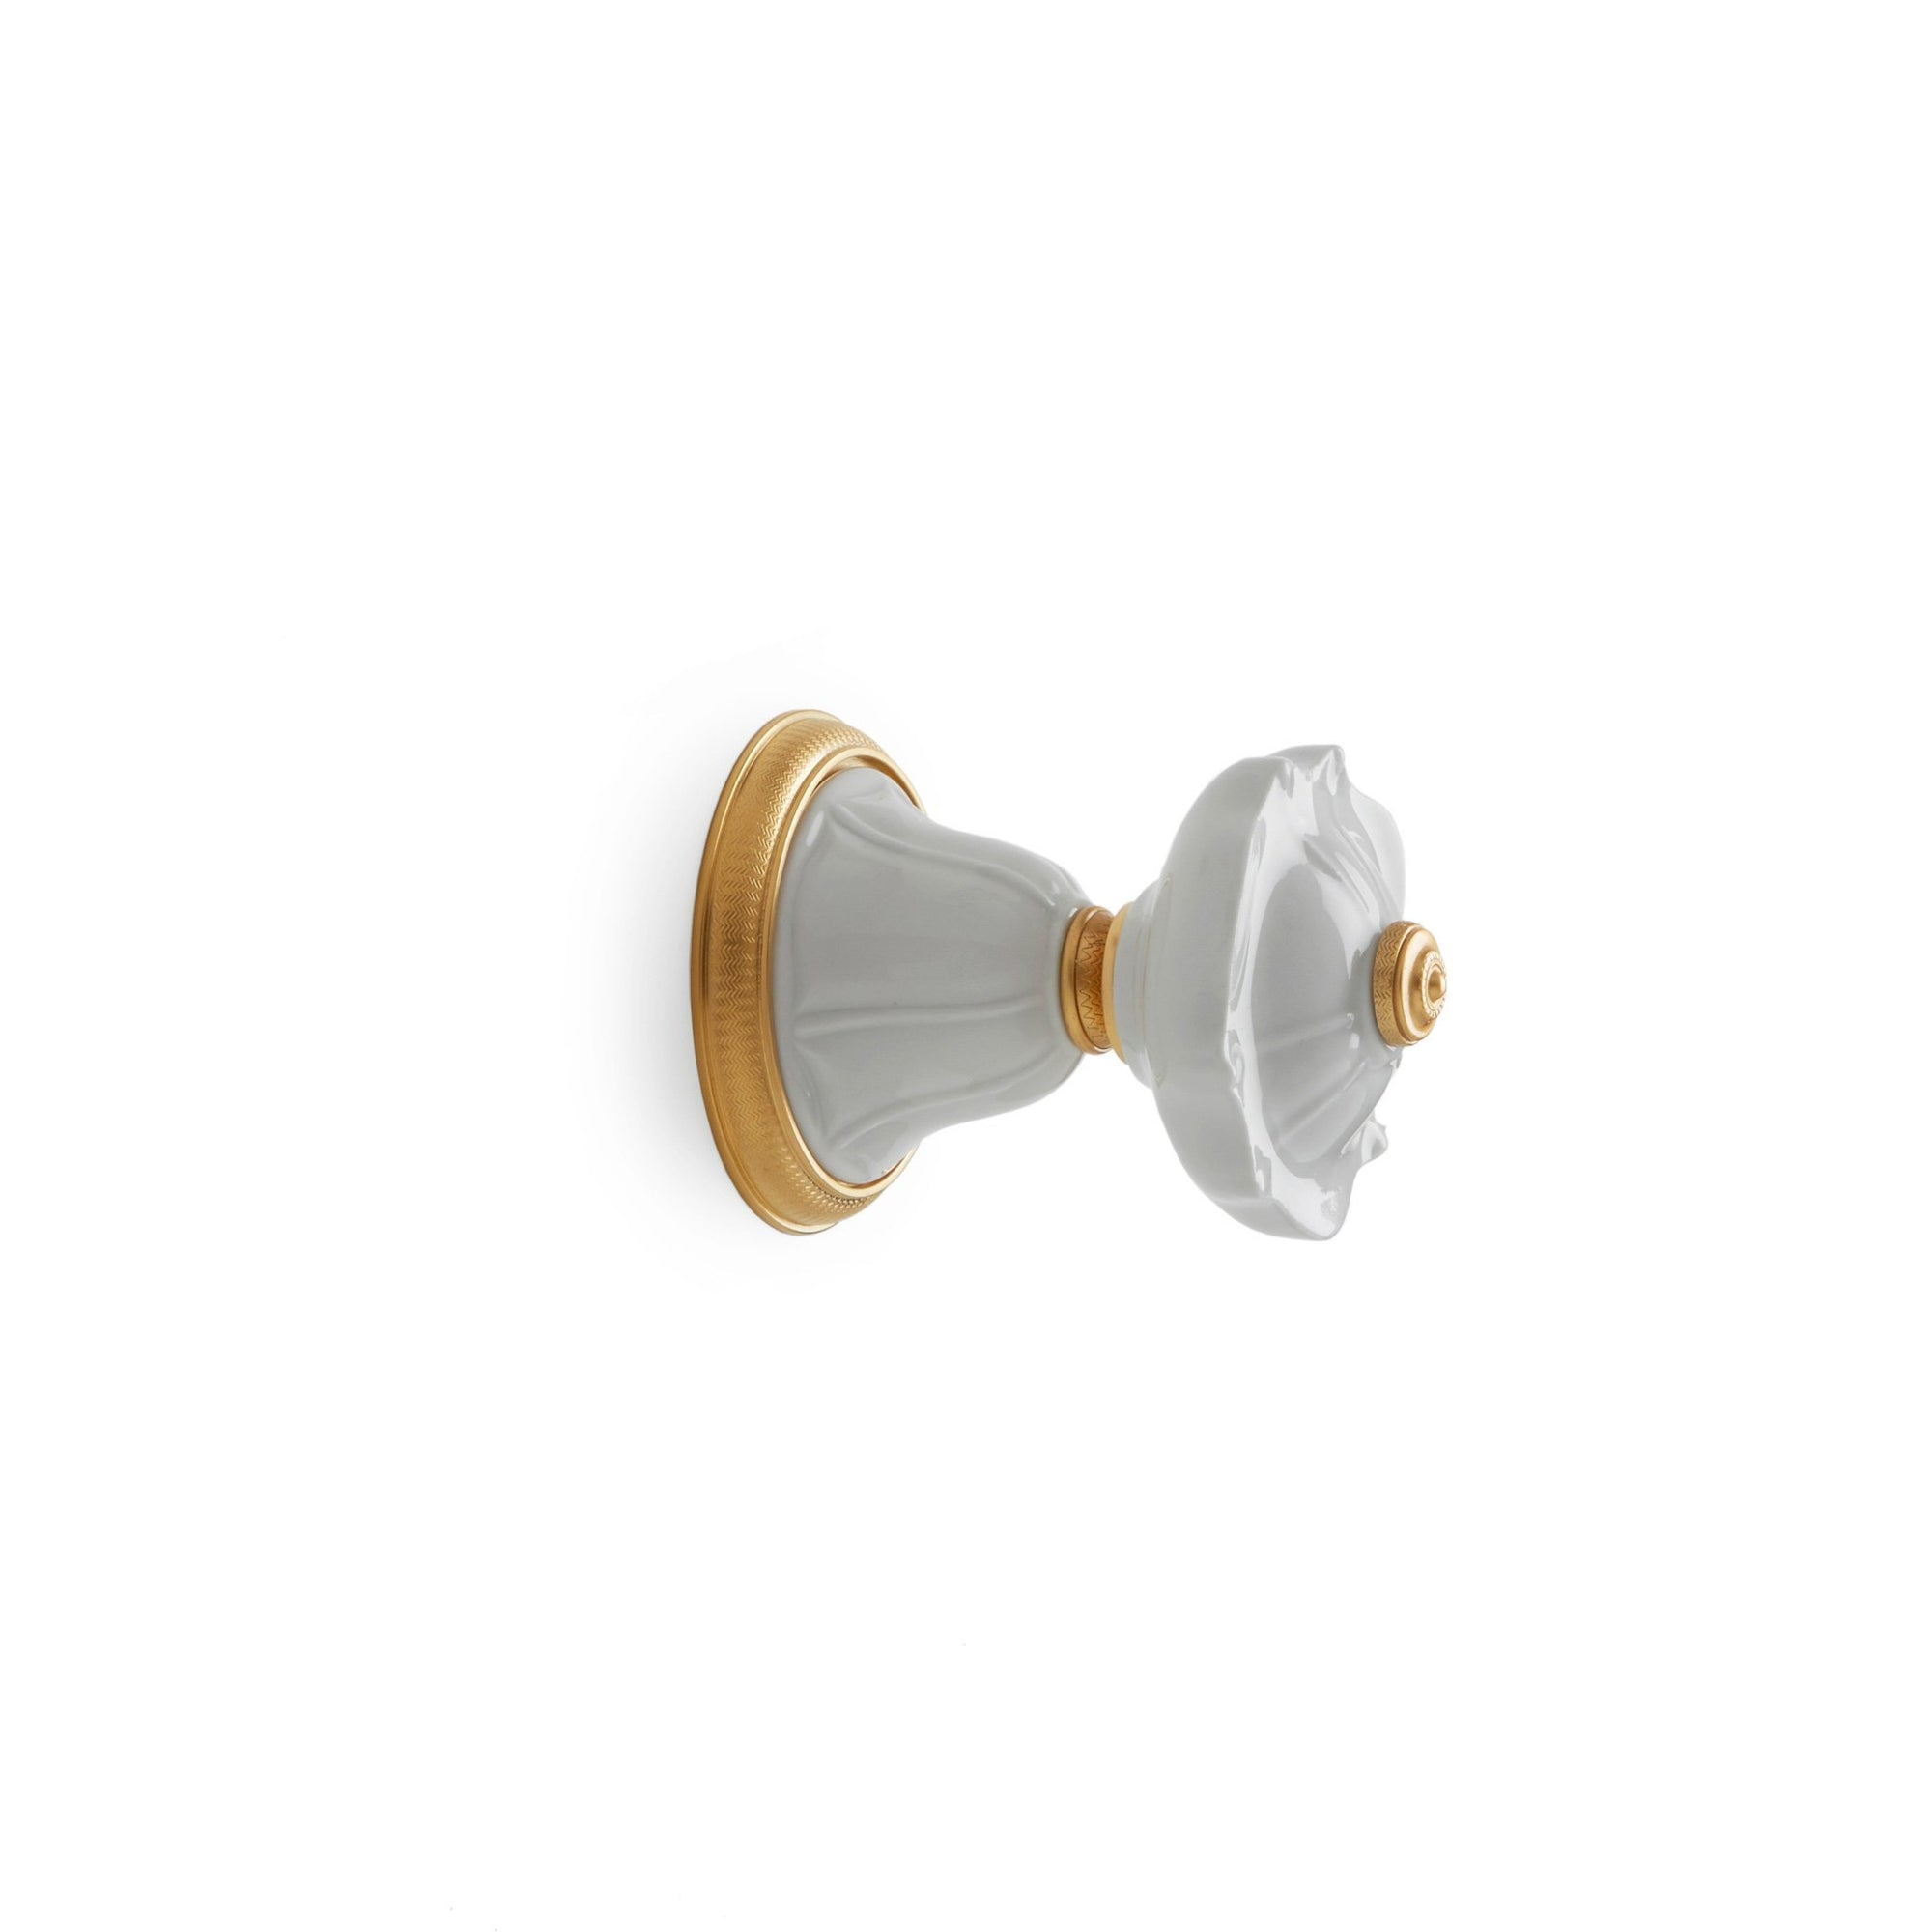 1097KB-ESC-03WH-GP Sherle Wagner International Scalloped Ceramic Knob Volume Control and Diverter Trim in Gold Plate metal finish with White Glaze inserts